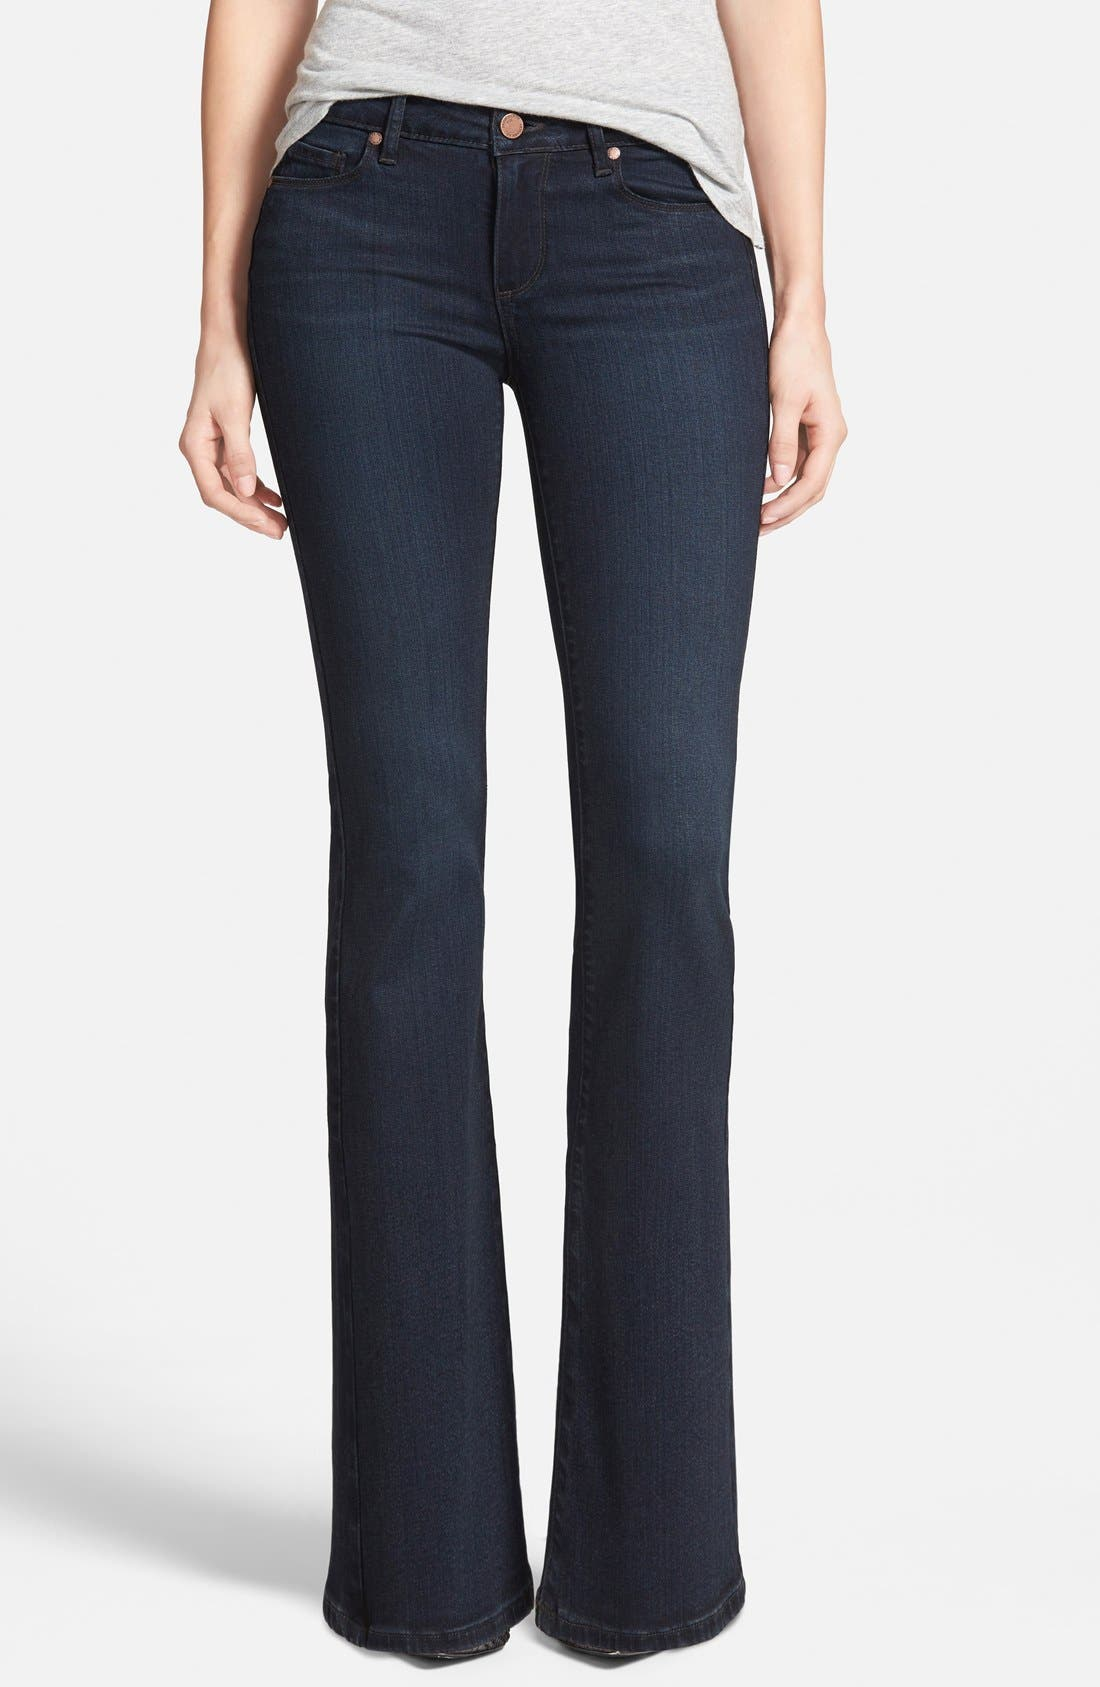 Main Image - Paige Denim 'Skyline' Bootcut Jeans (Keely) (Petite) (Nordstrom Exclusive)